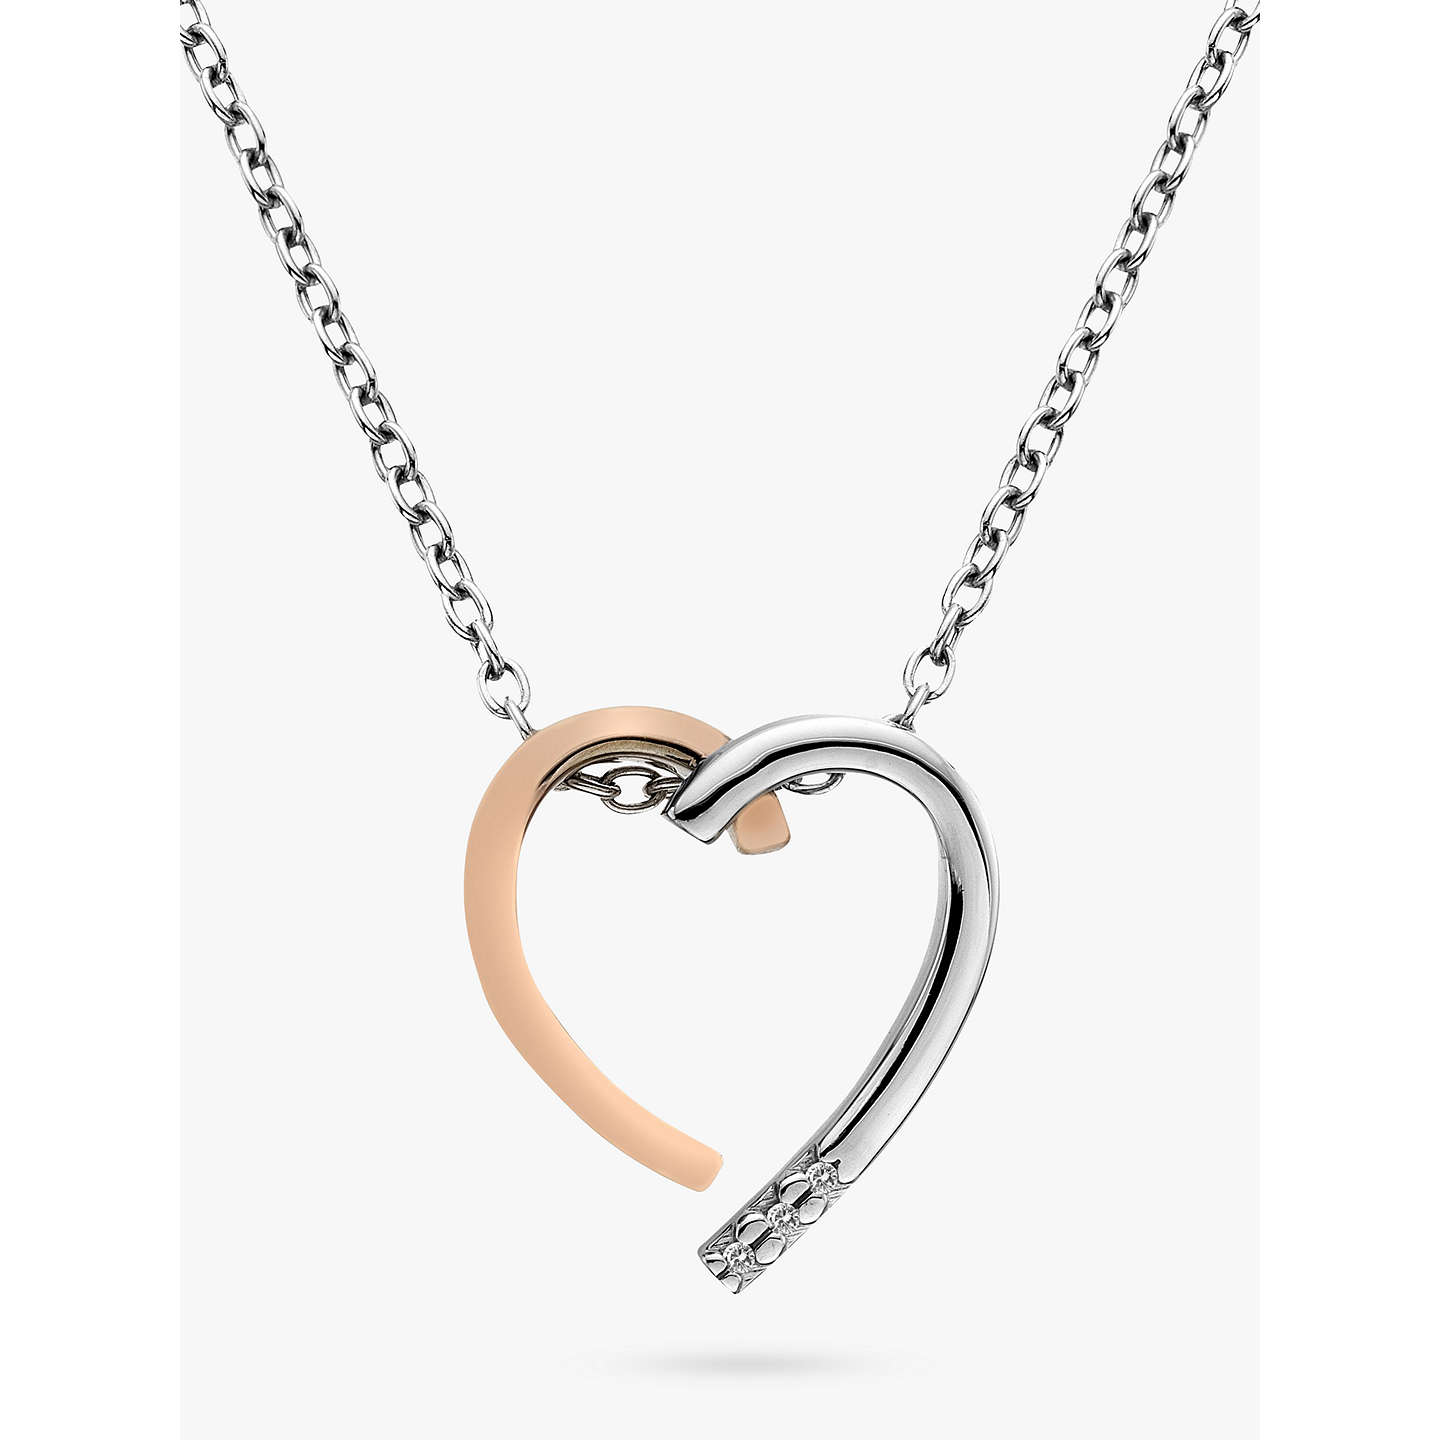 Hot diamonds large heart pendant necklace silverrose gold at john buyhot diamonds large heart pendant necklace silverrose gold online at johnlewis mozeypictures Gallery